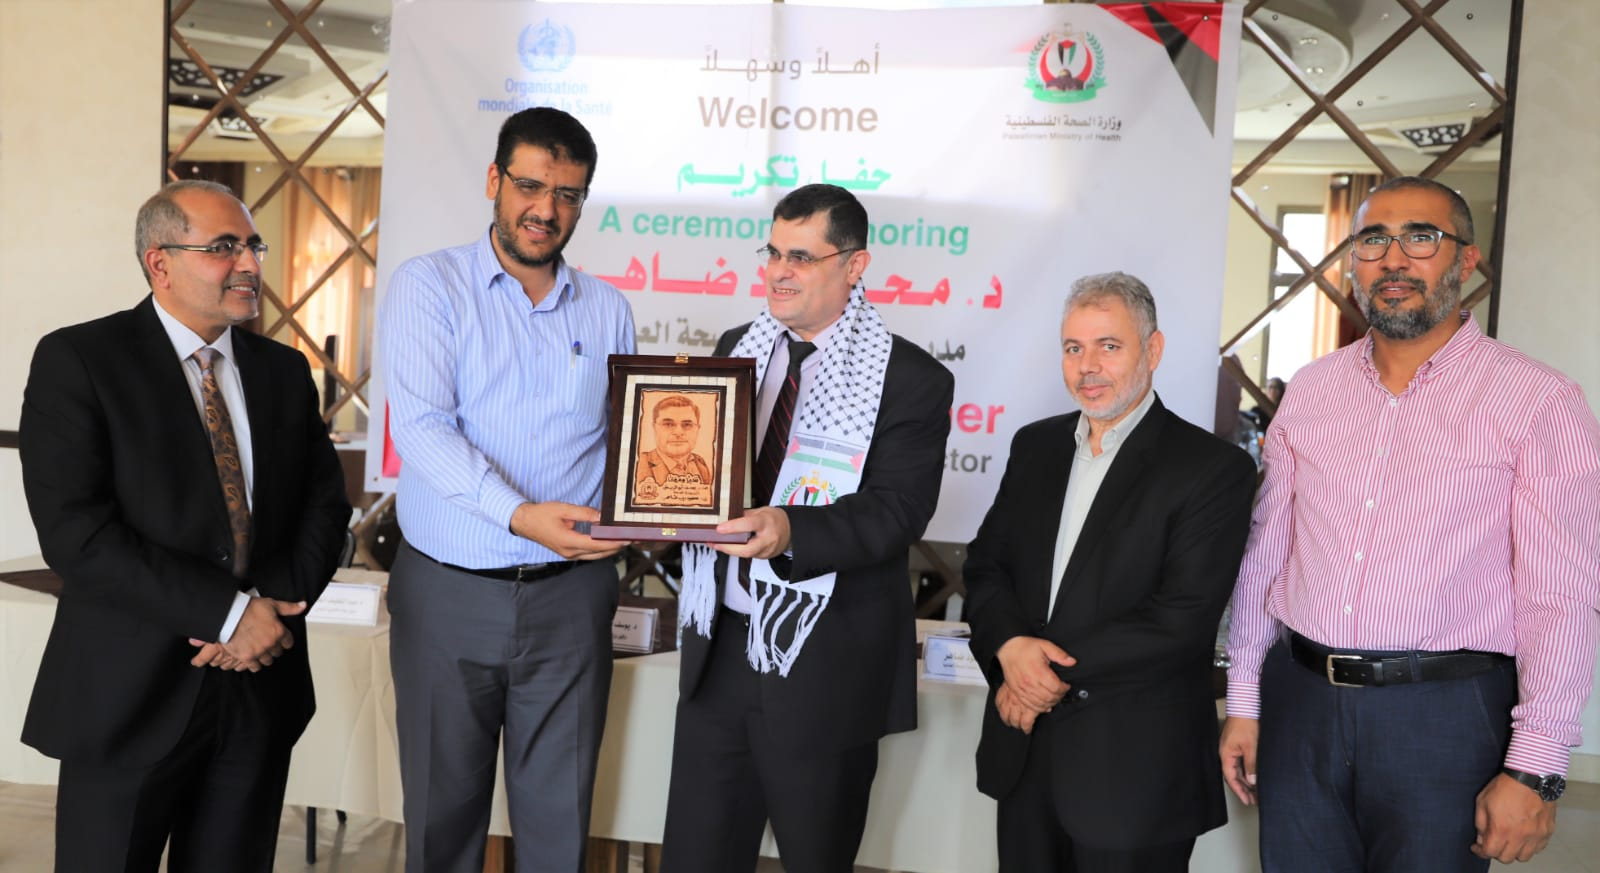 MoH in Gaza honors Dr. Mahmoud Daher, WHO sub-office Director in Gaza